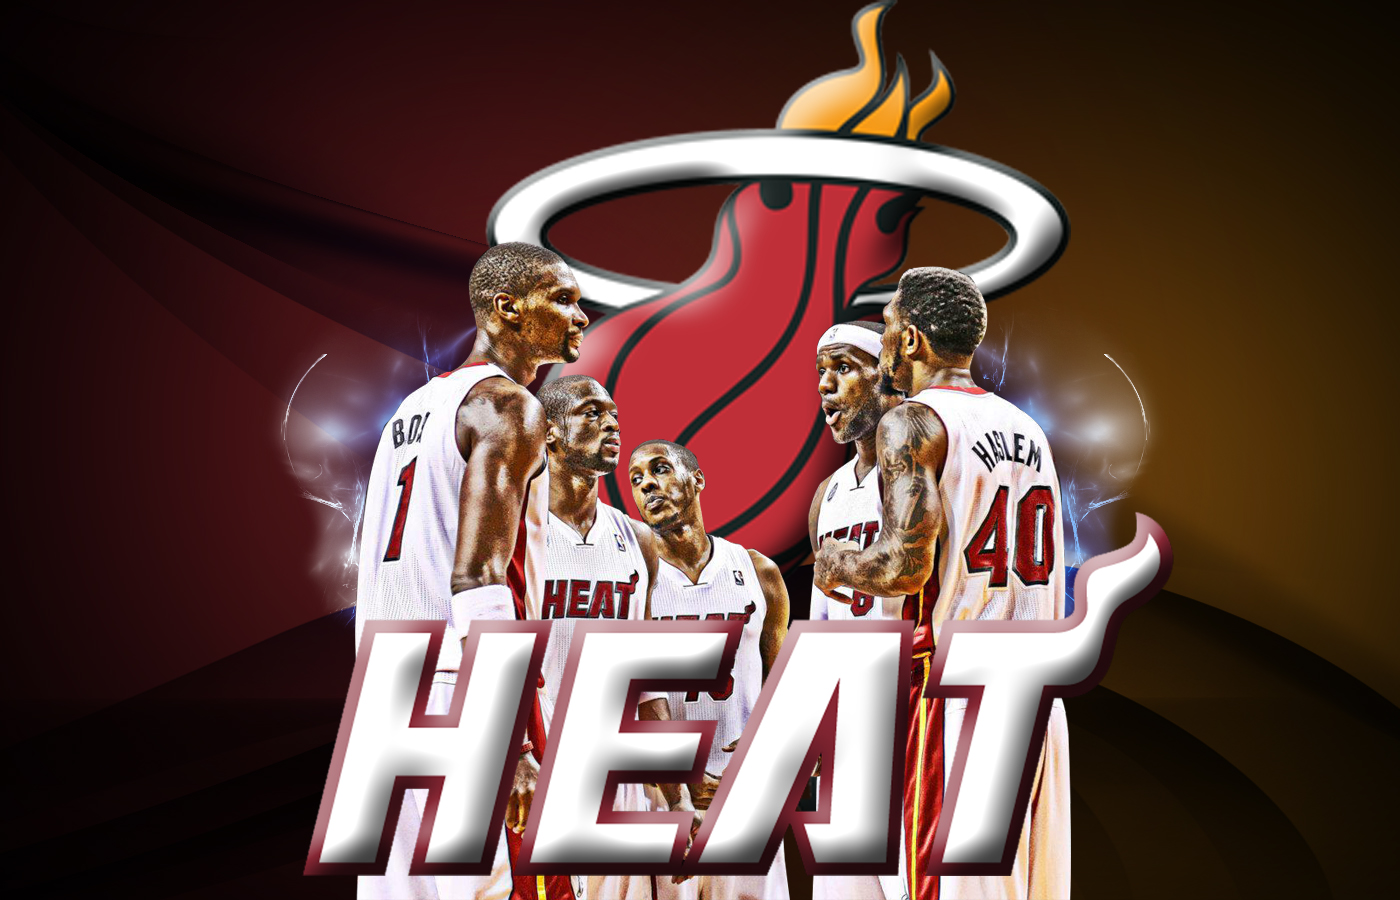 Miami Heat Wallpaper 47 184280 High Definition Wallpapers wallalay 1400x900